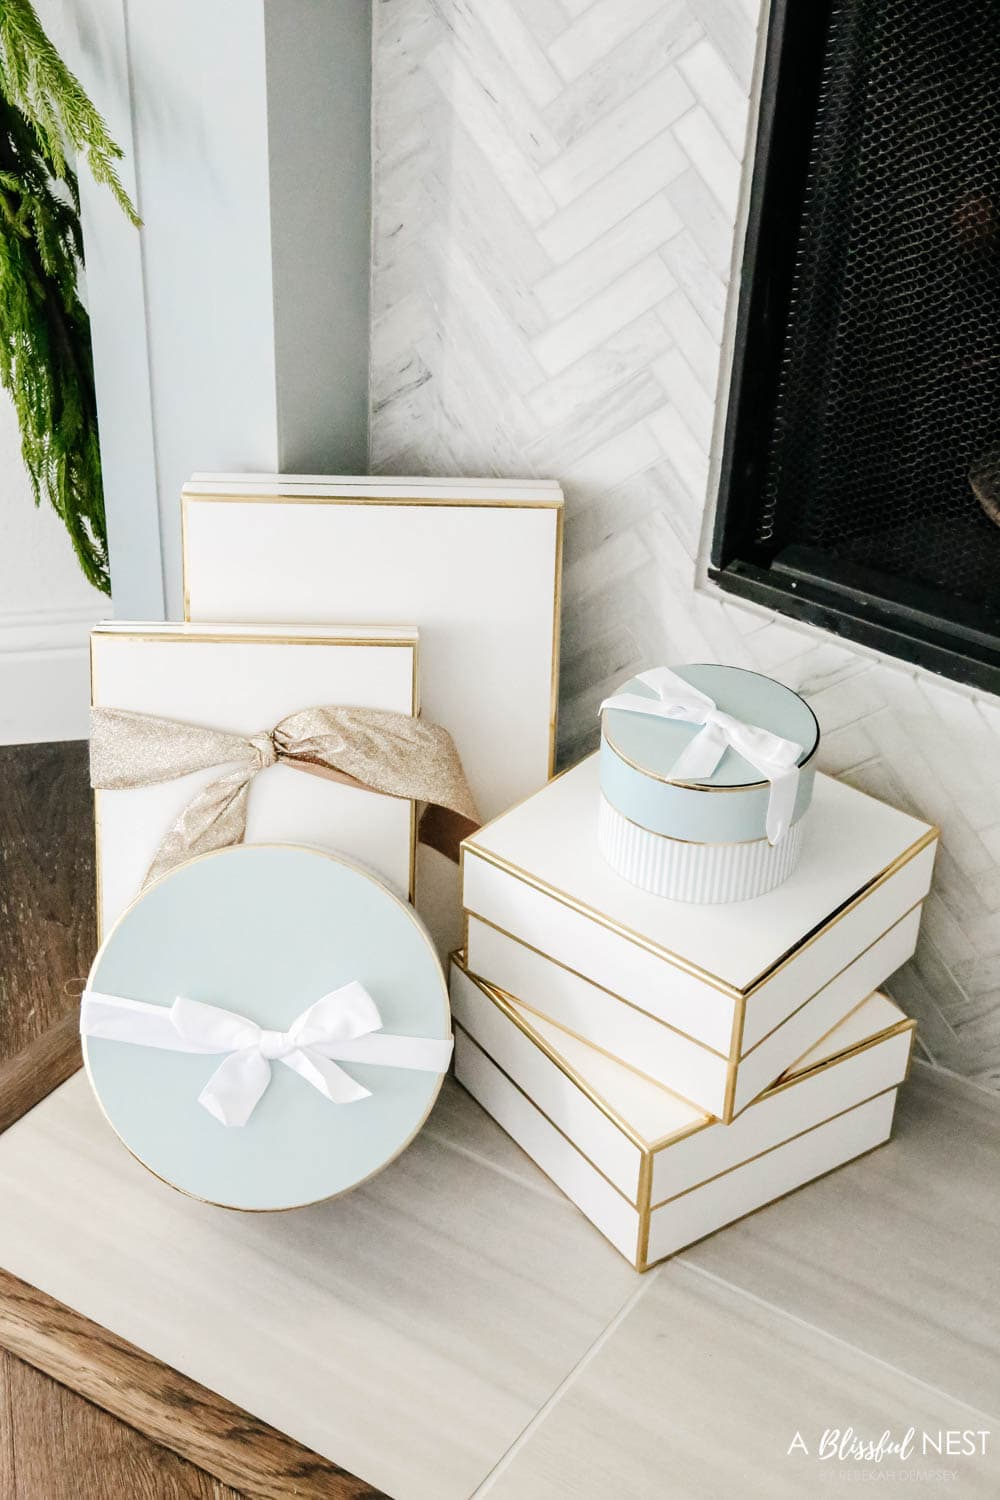 Gift boxes, holiday wrapping ideas, Christmas decor ideas. #ABlissfulNest #christmasdecor #christmasideas